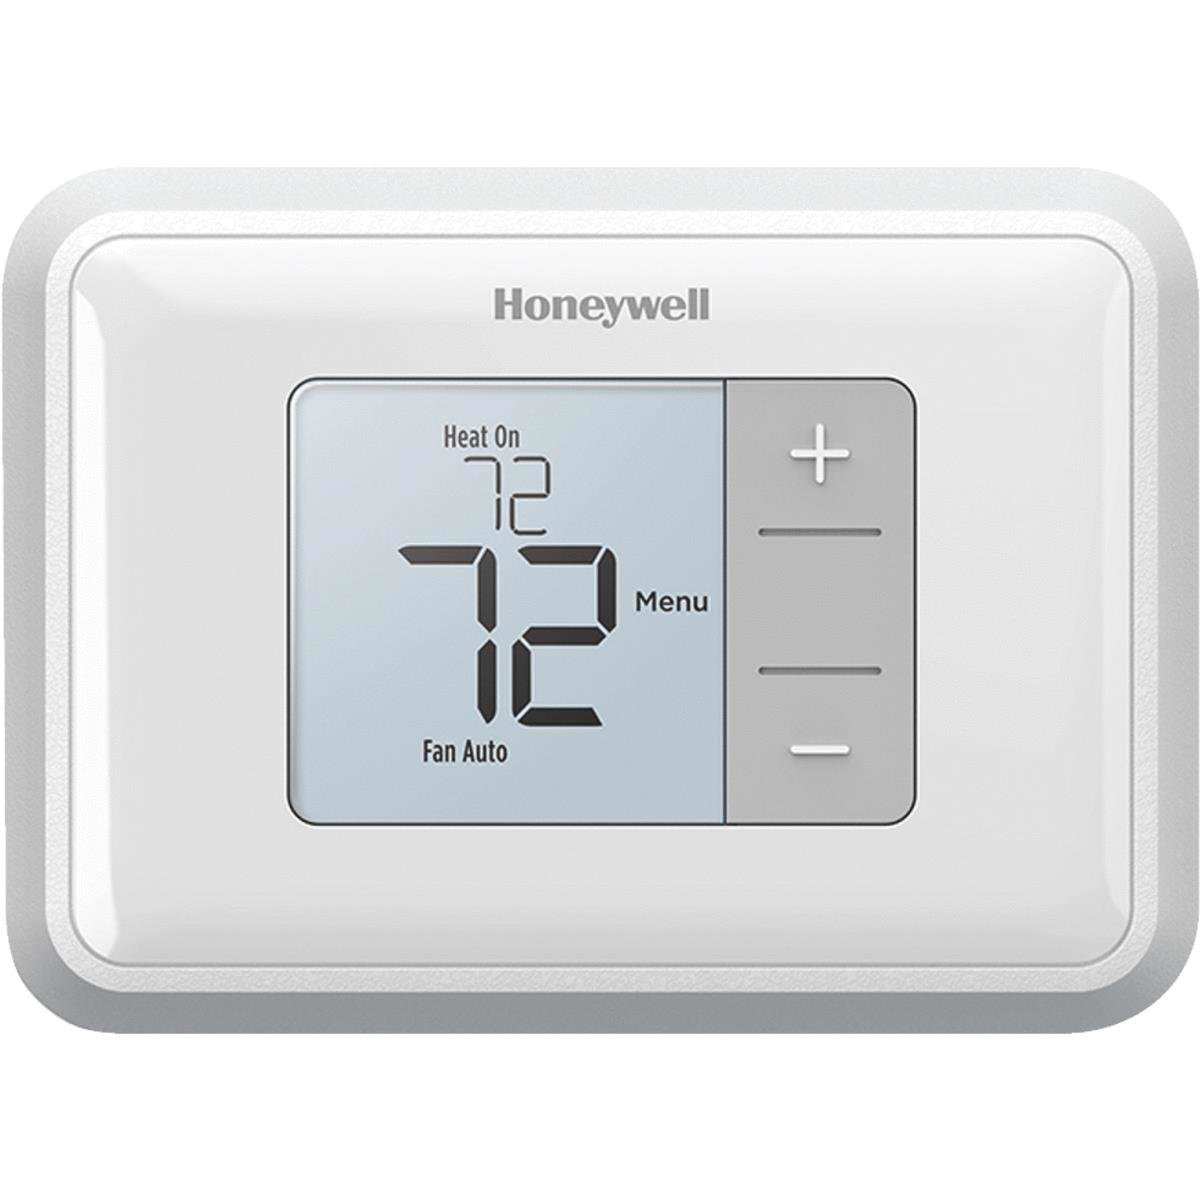 Honeywell Simple Display Non-Programmable Thermostat by Honeywell Home